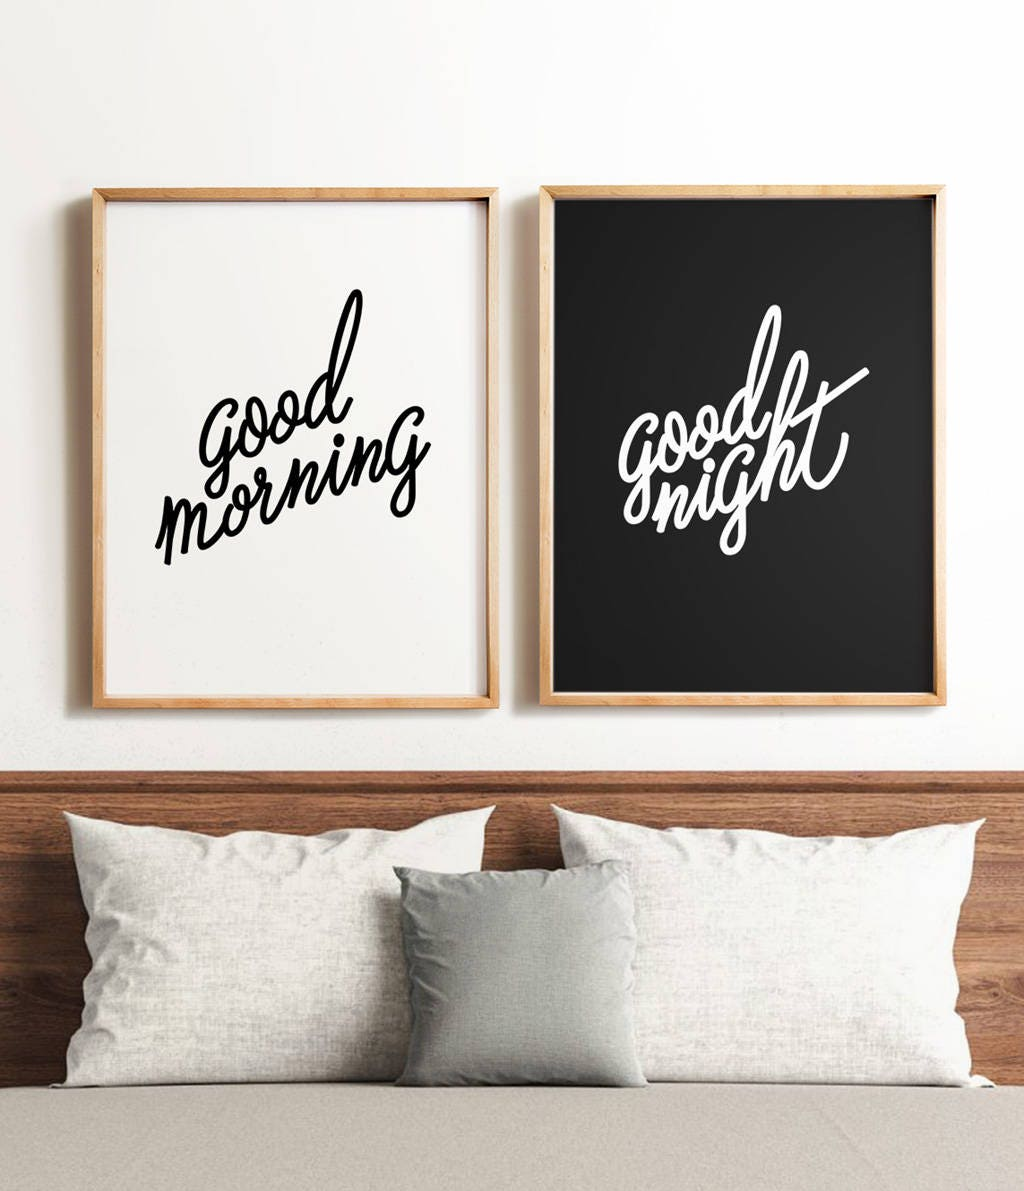 Bedroom Art Printables: Bedroom Art Set PRINTABLE Art Good Morning Good Night Black